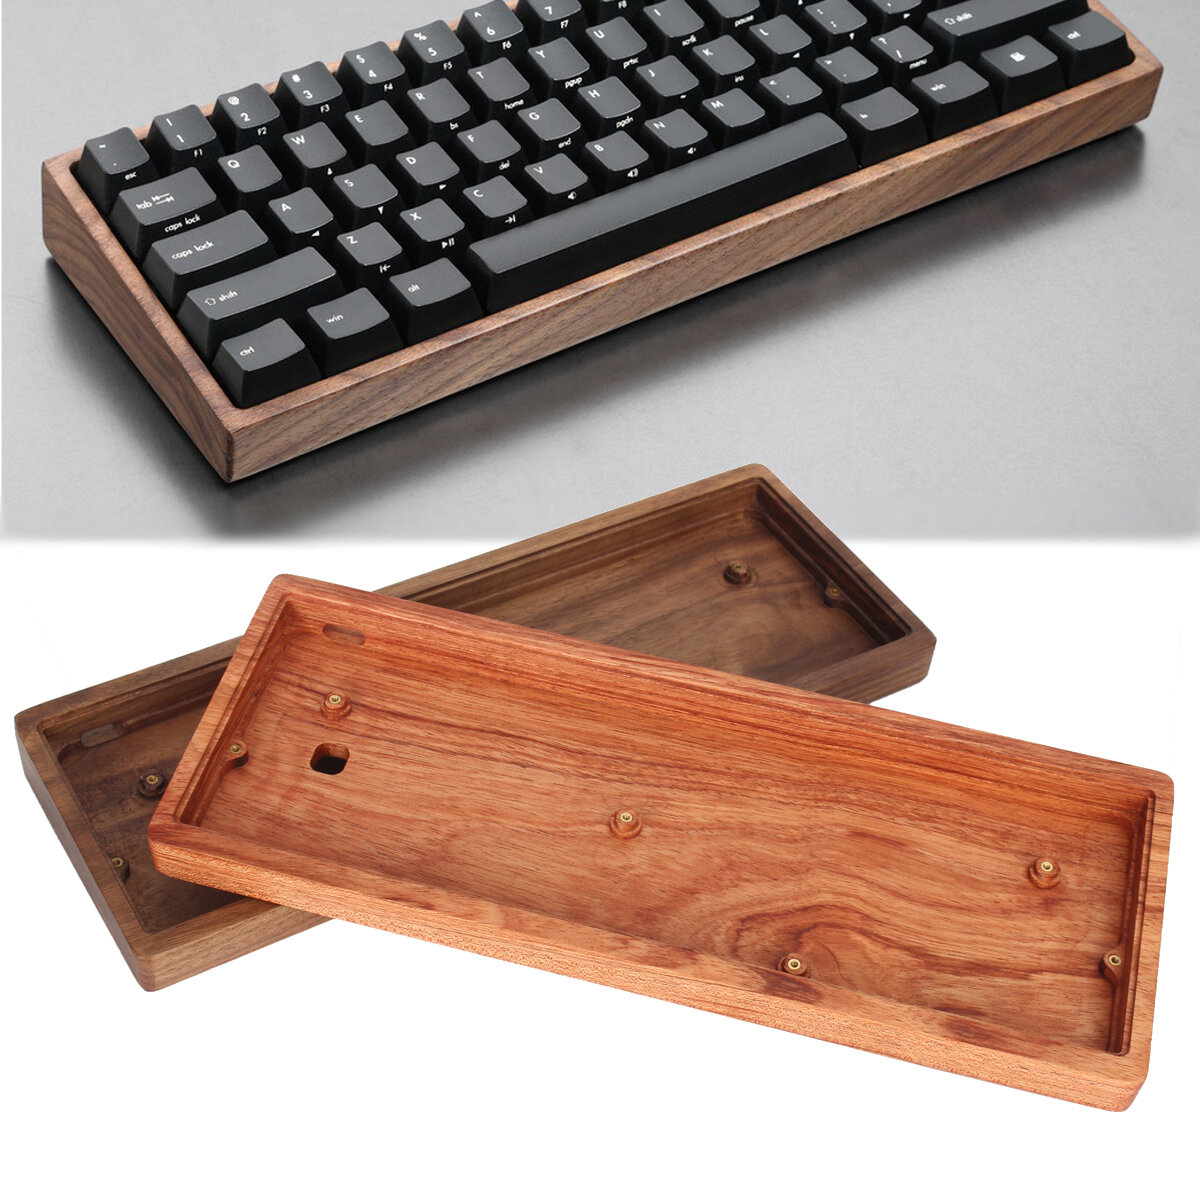 GH60 Solid Wooden Case Customized Shell Base For 60% Mini Mechanical Gaming Keyboard